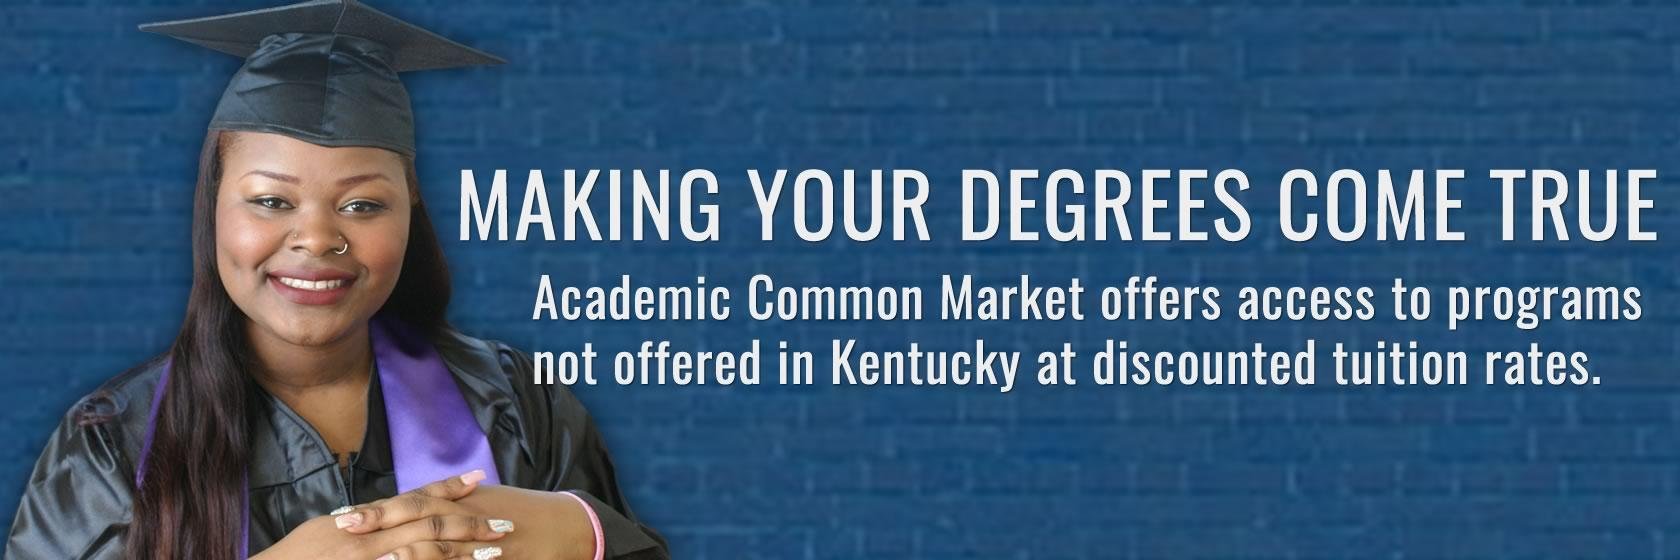 Learn more about what degree options are available through Kentucky's Academic Common Market.